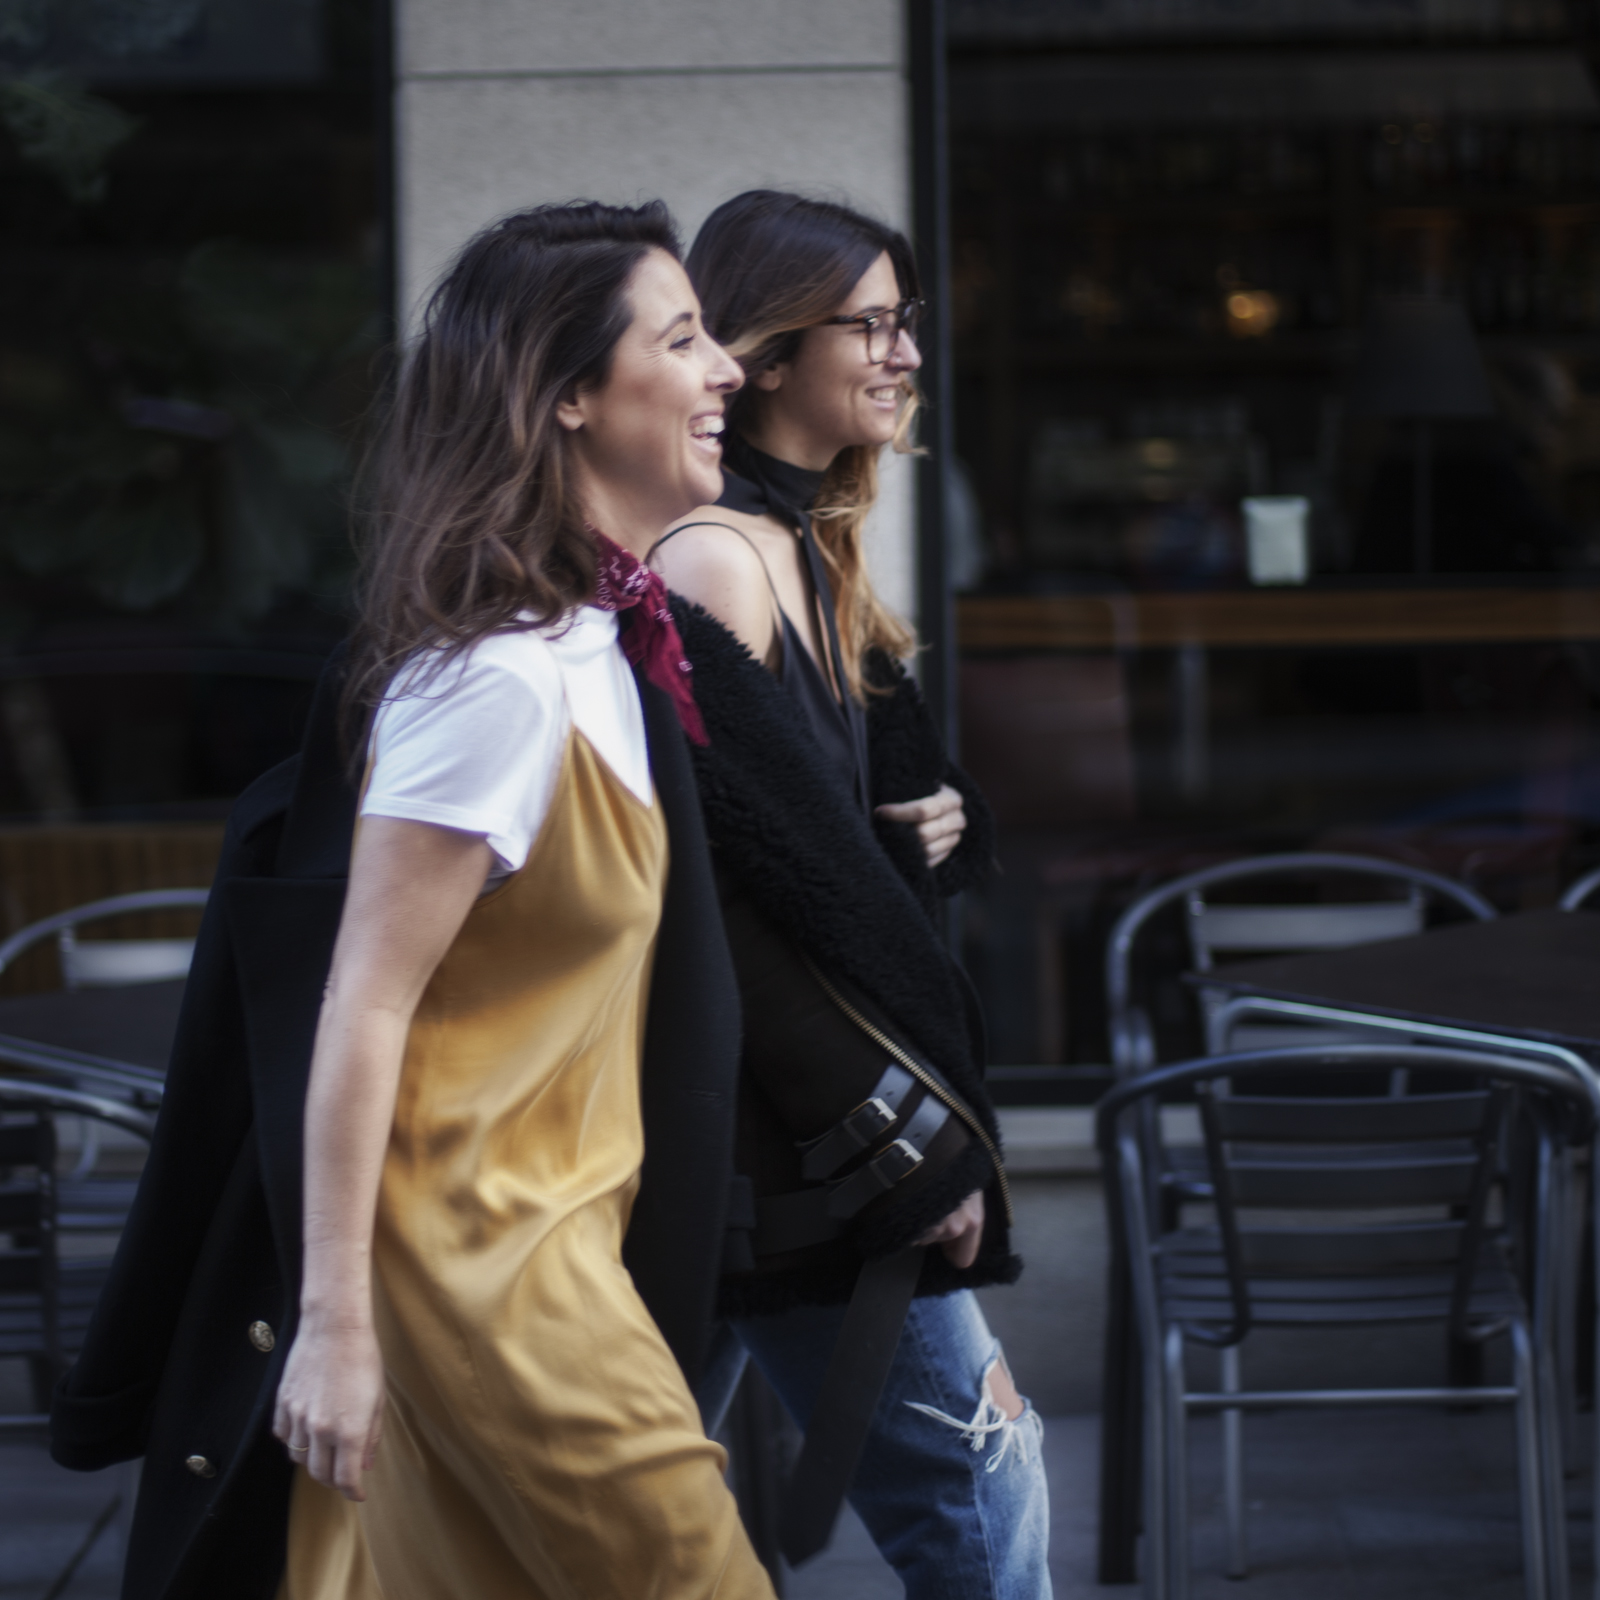 you and me-streetstyle-fashion-silk-top-coruña-moda gallega-descalzaporelparque